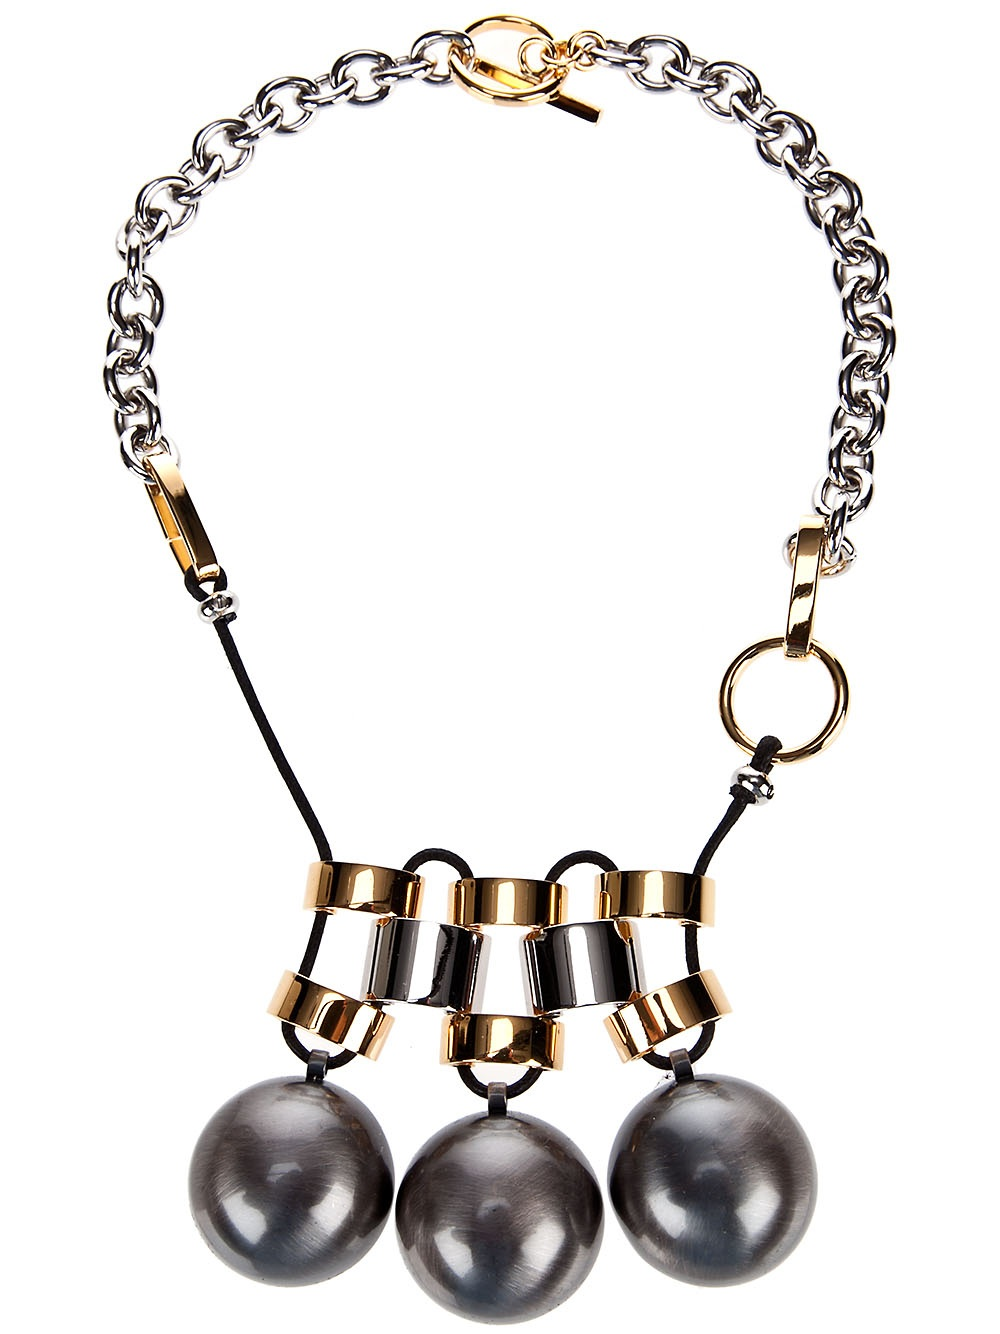 vionnet-pendant-necklace $529